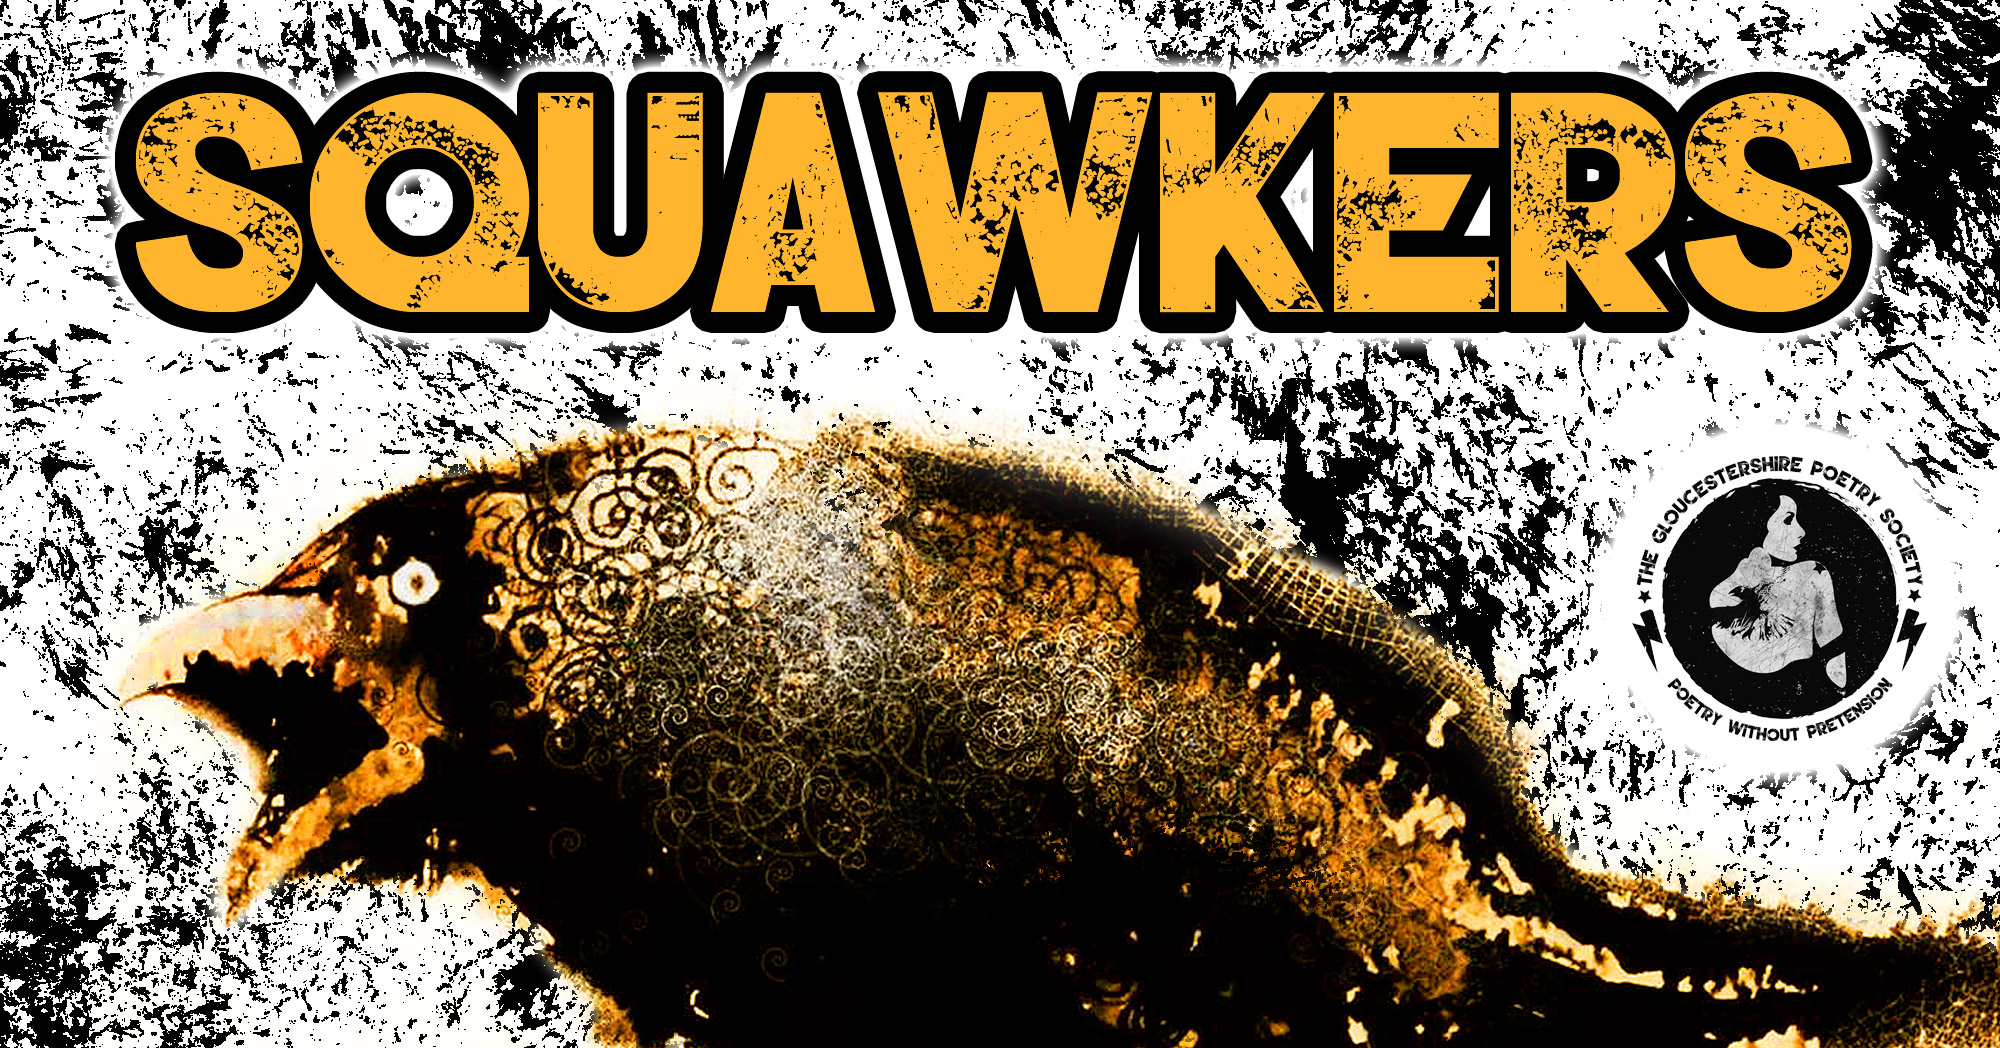 Squawkers-fb-banner-500x262pxl.jpg